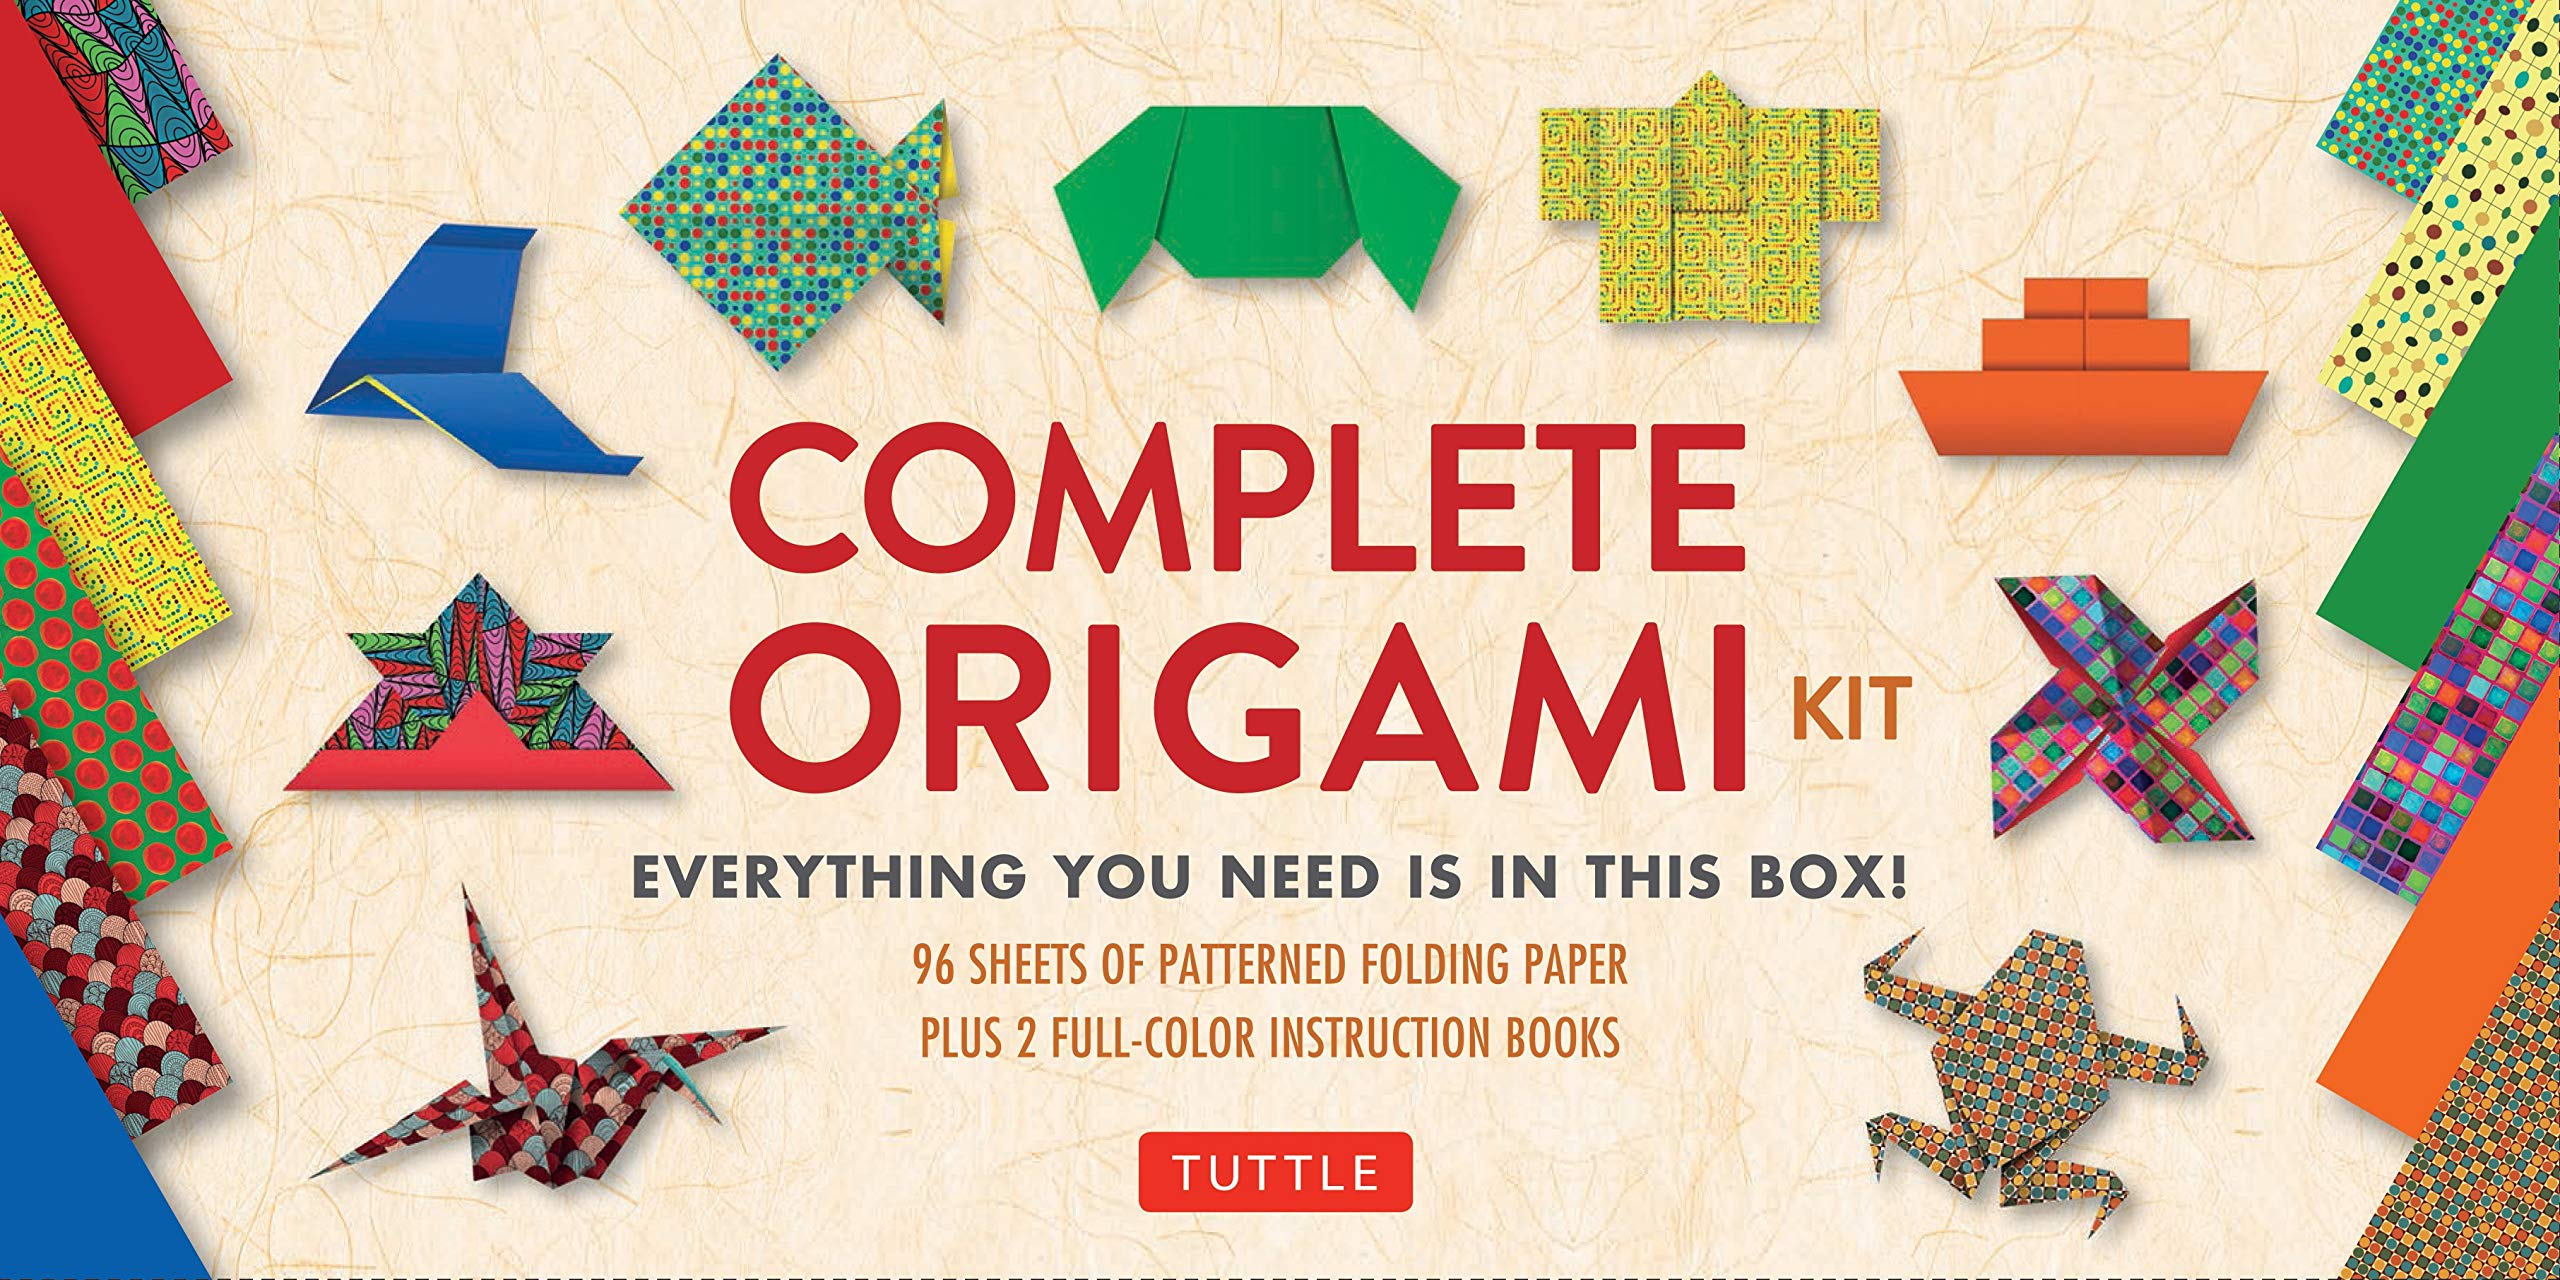 Amazon.com: Complete Origami Kit: [Kit with 2 Origami How-to ...